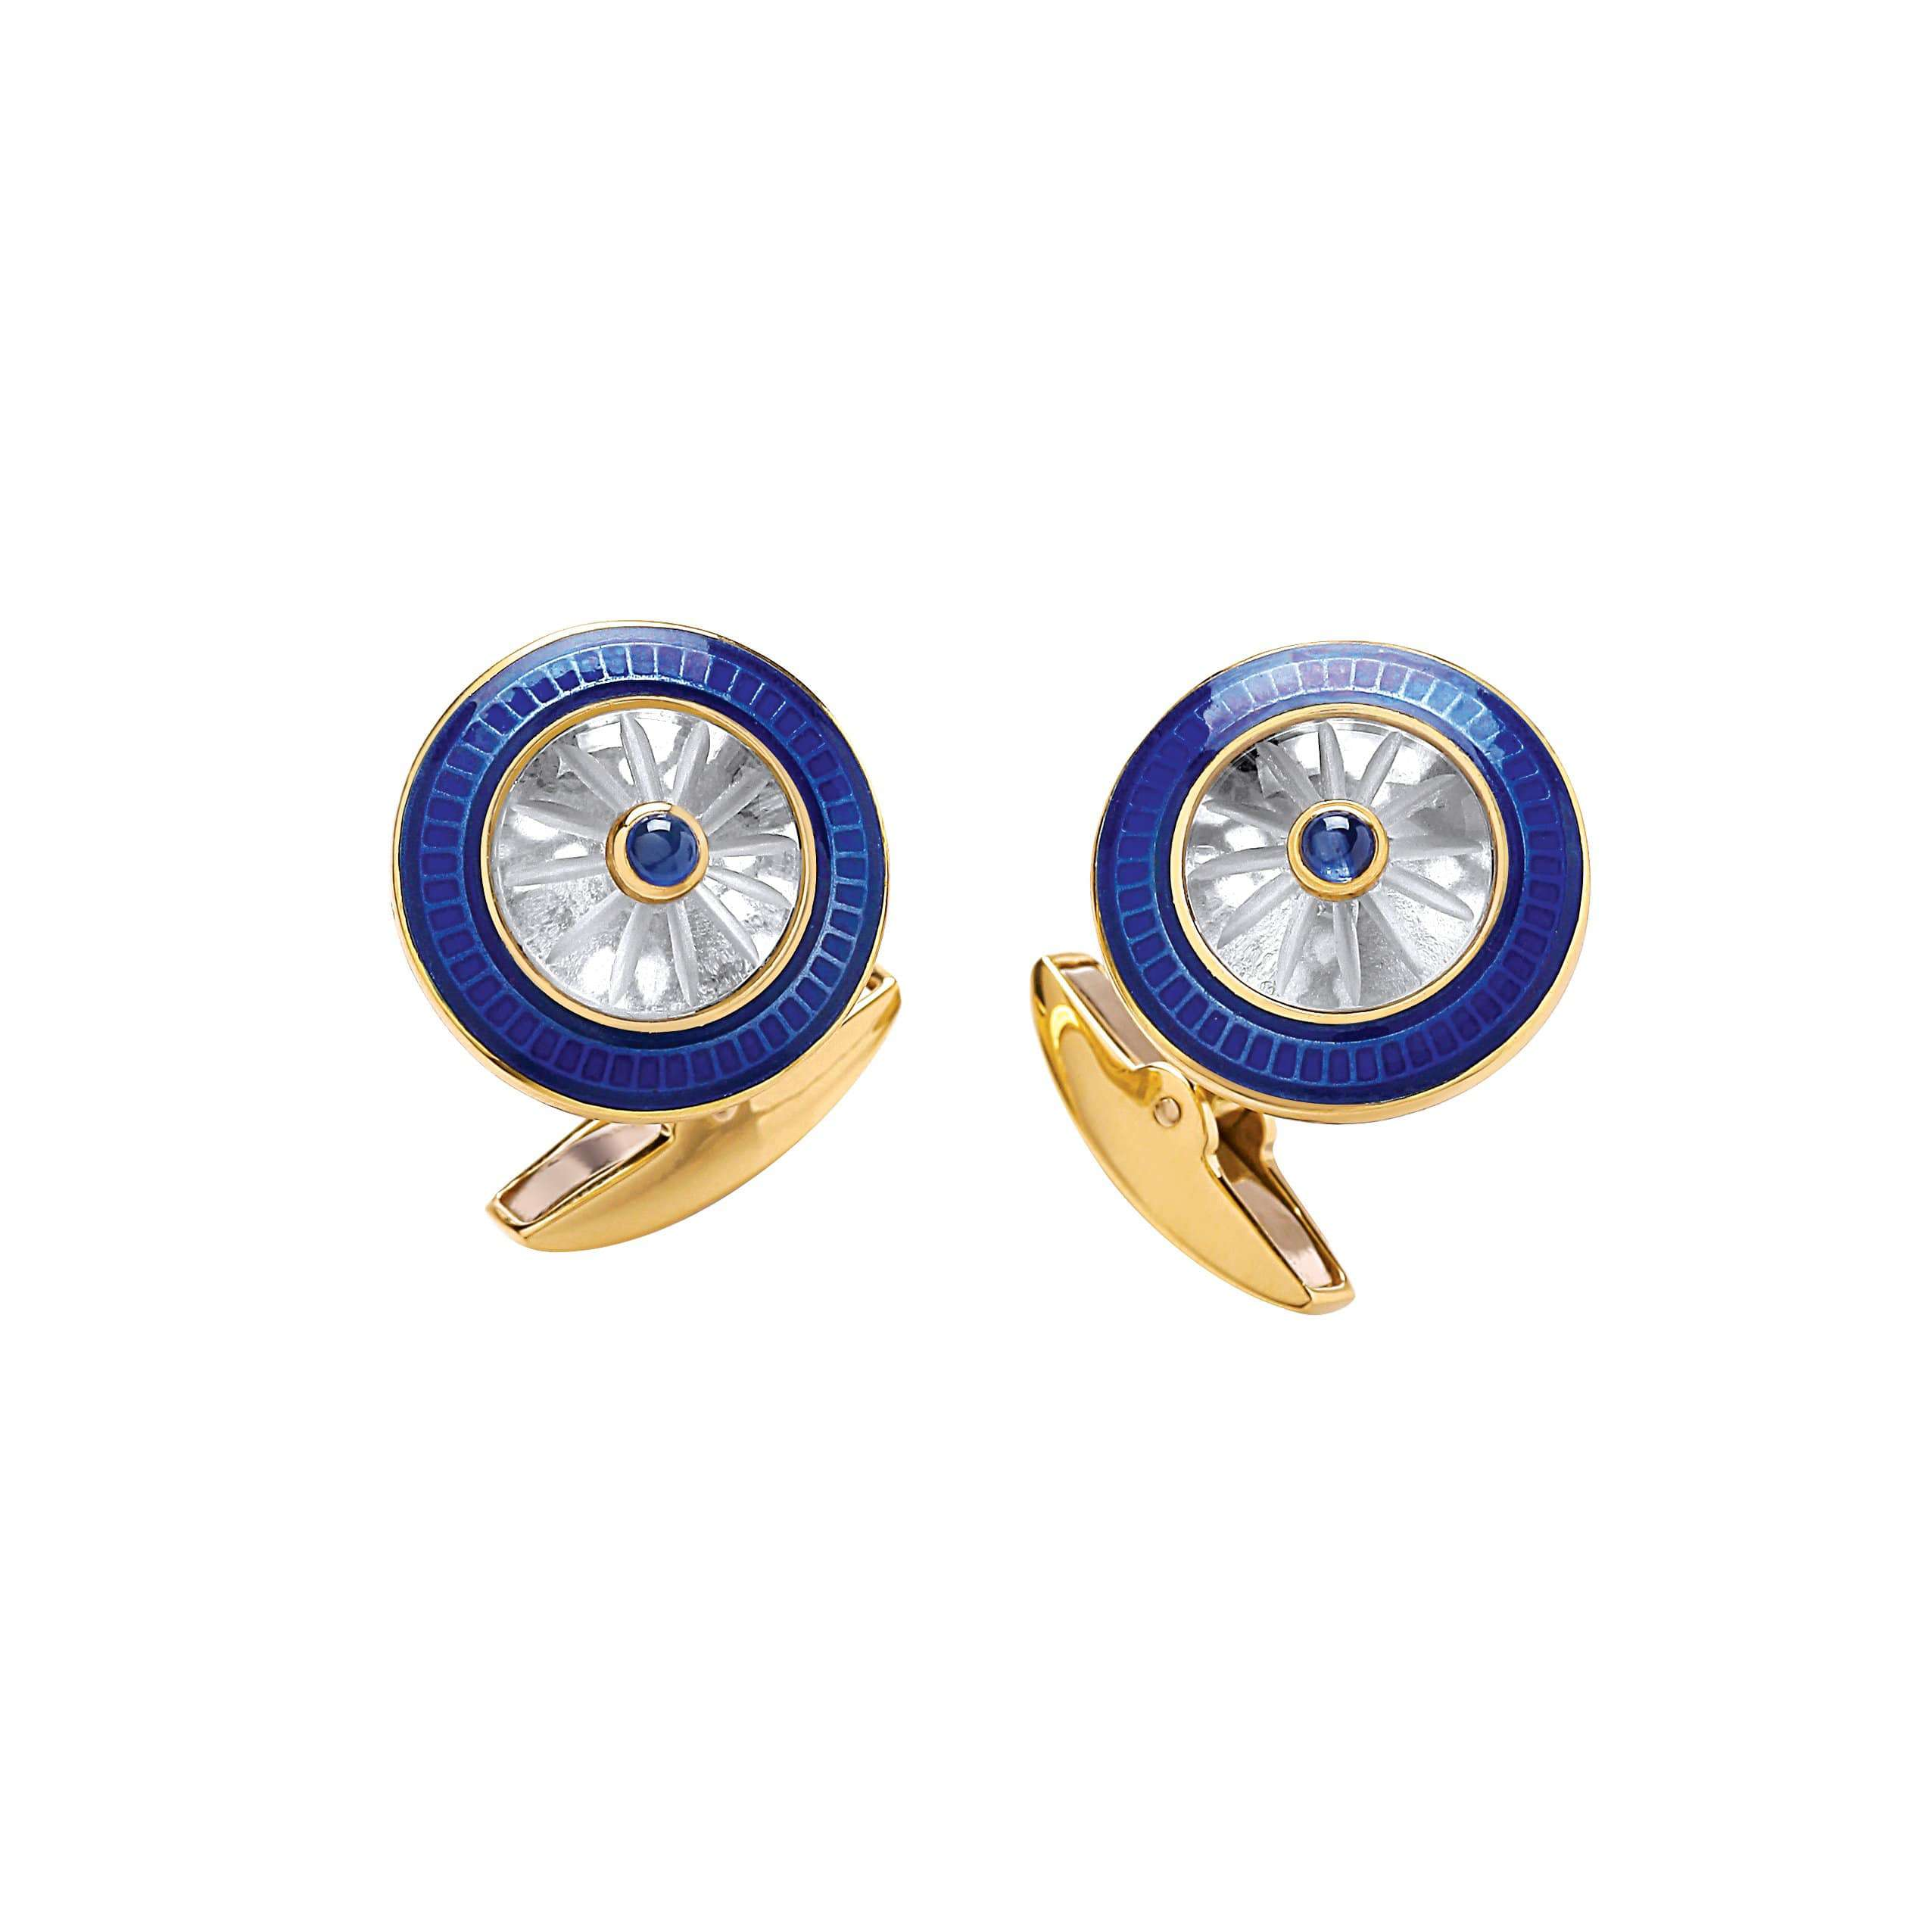 Deakin & Francis Yellow Gold Round Crystal Cufflinks